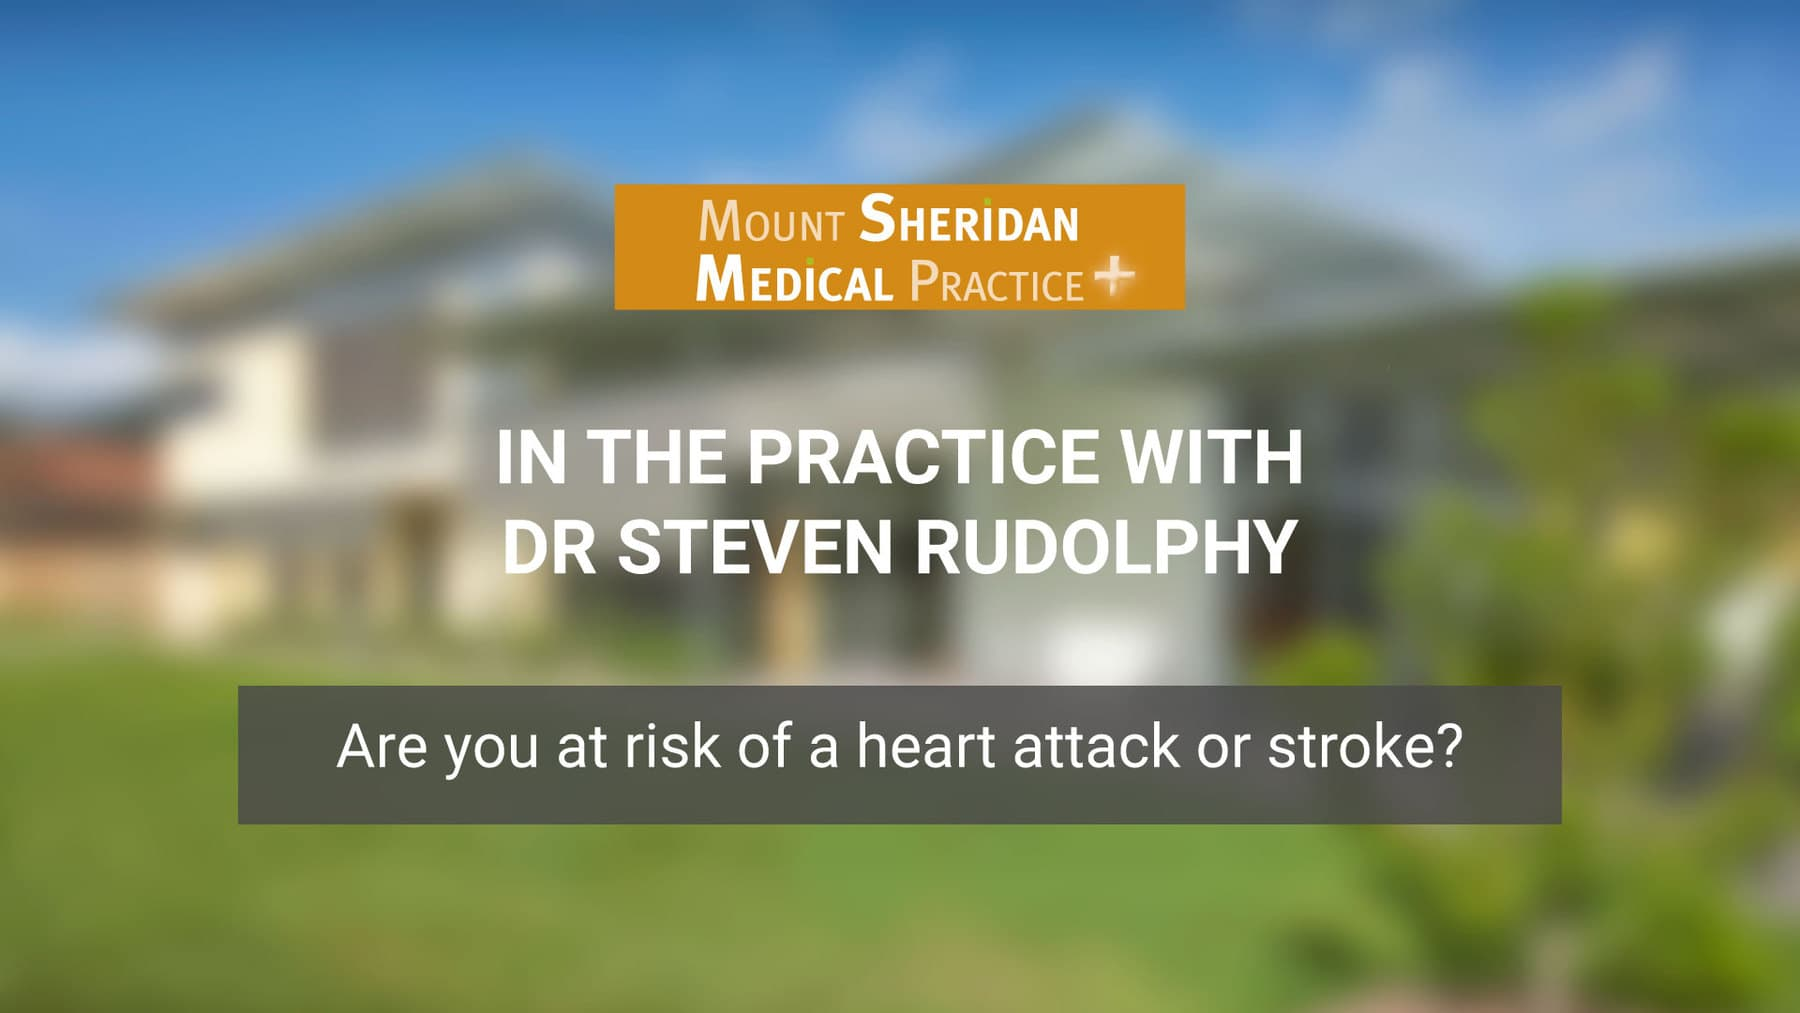 Are you at risk of a heart attack or stroke?